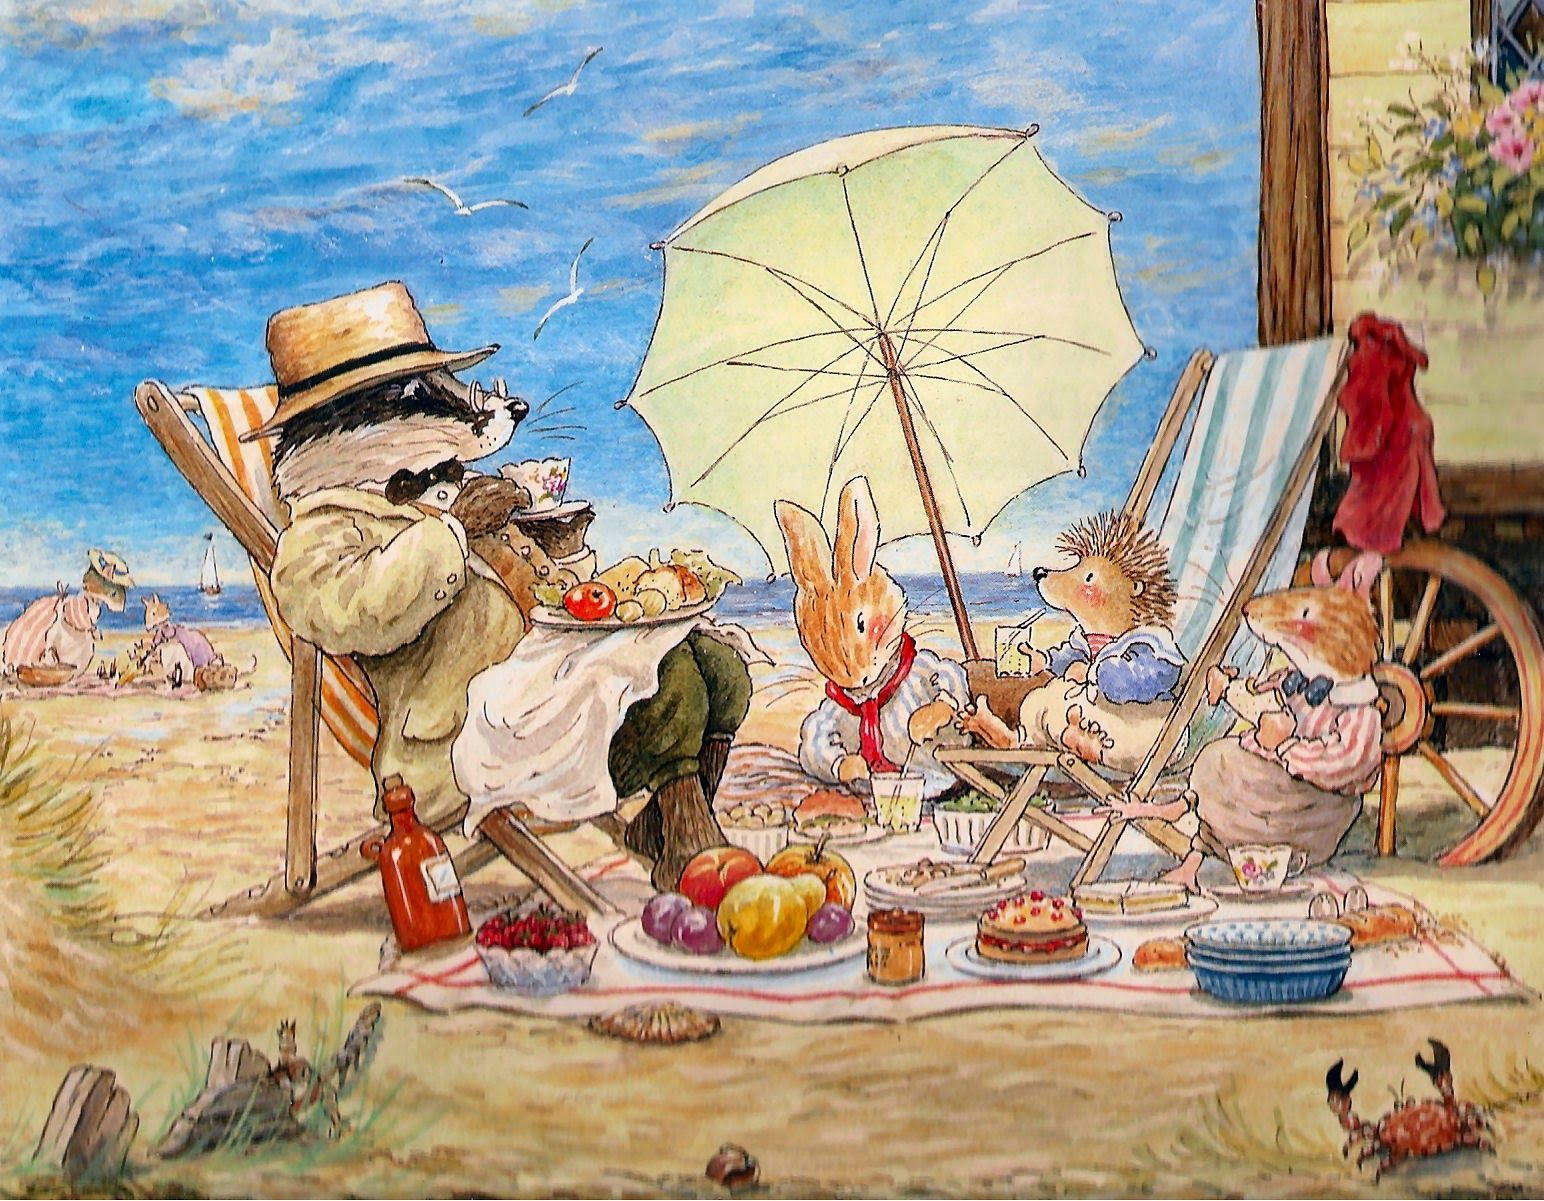 A day at the beach - Foxwood Tales by Cynthia and Brian Paterson